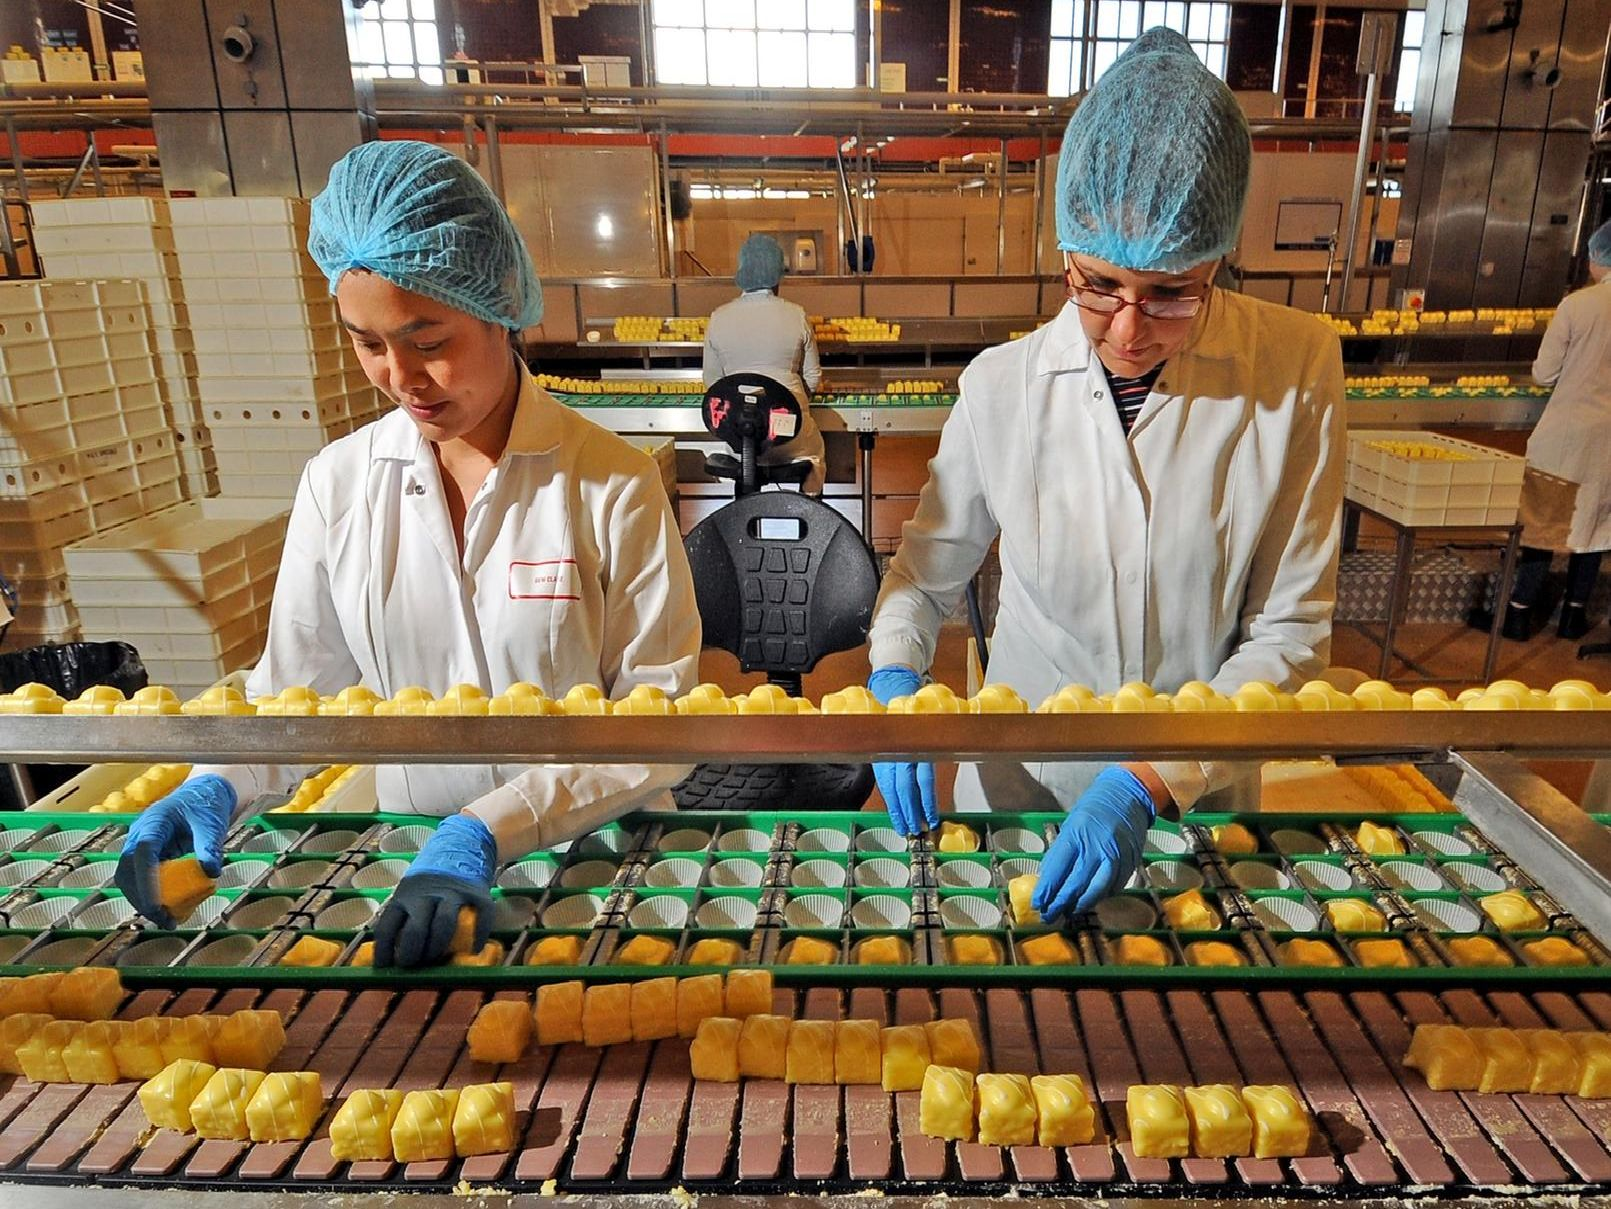 Staff at work preparing Lemon Slices